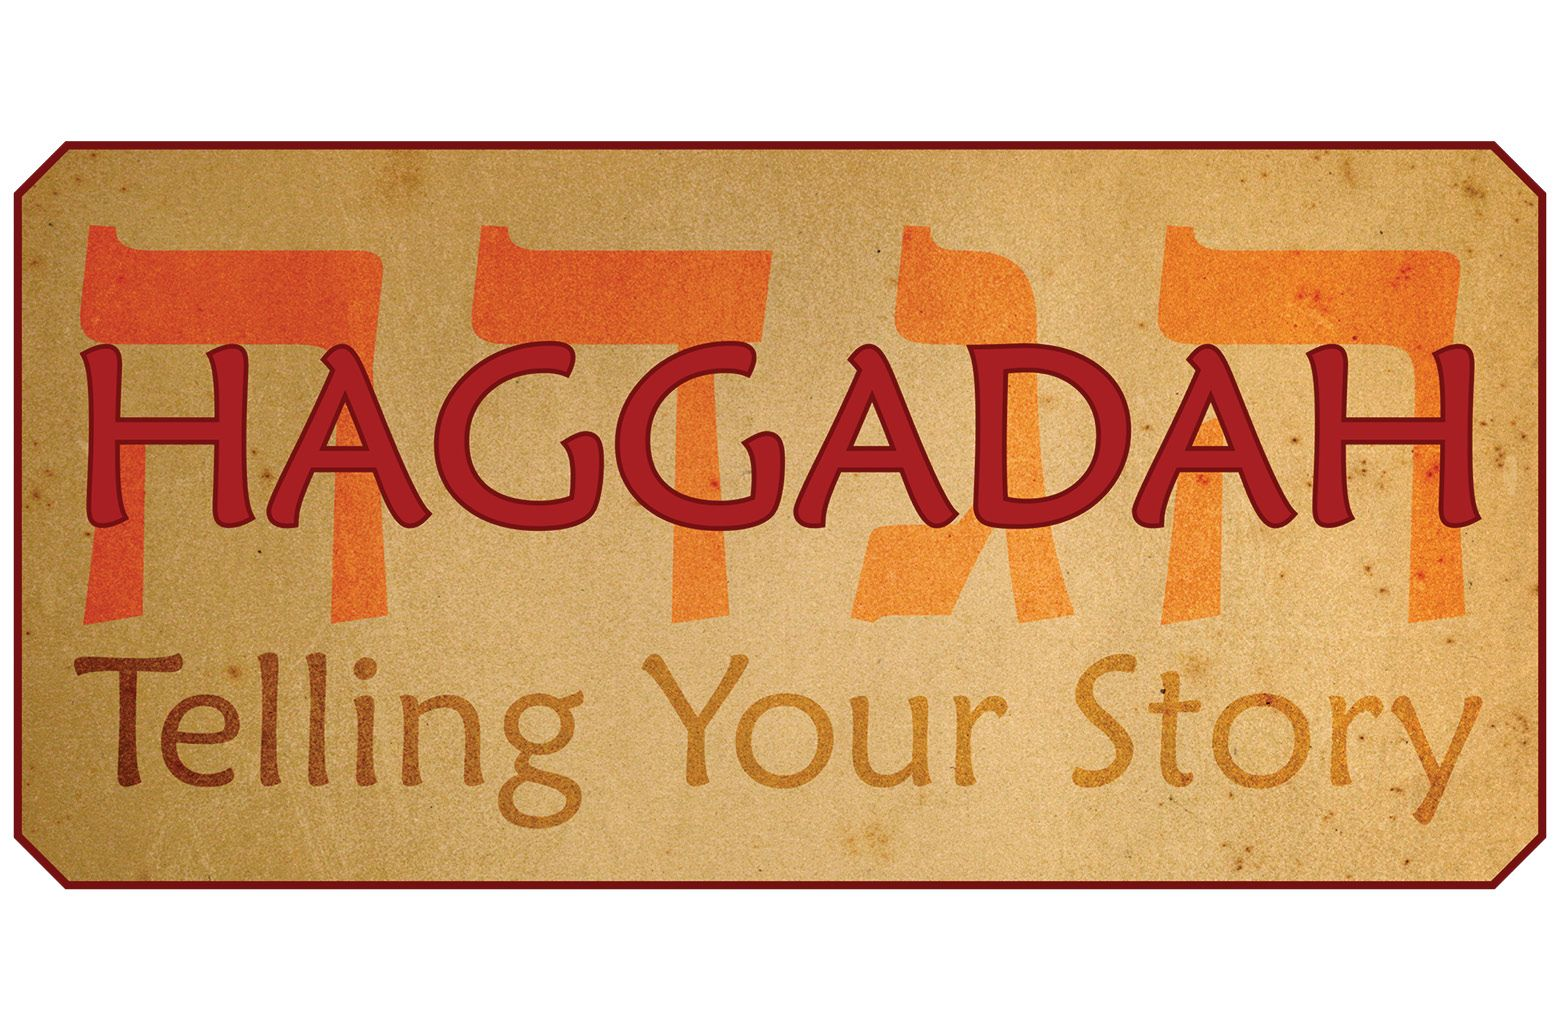 Haggadah: Telling Your Story In The Time of Coronavirus